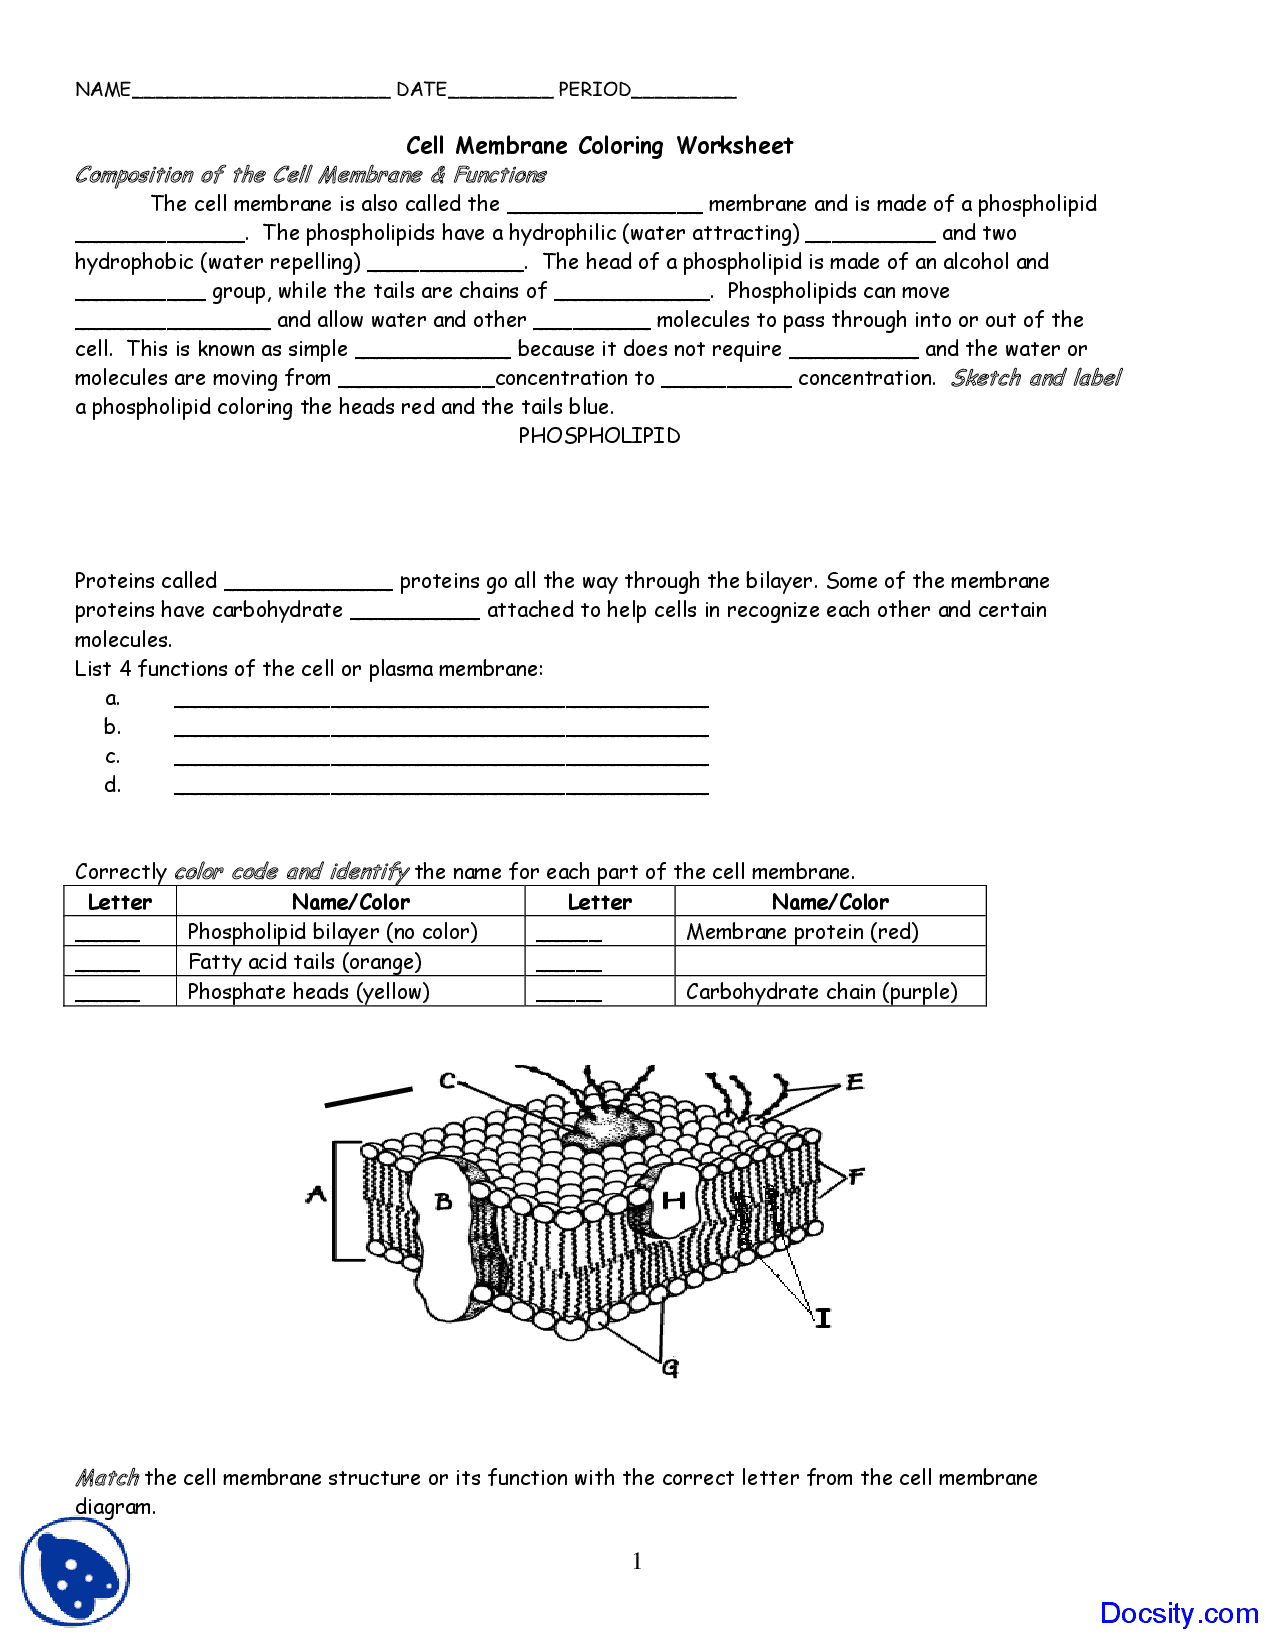 Cell Membrane Coloring  Application Of Biology  Assignment  Docsity Also Cell Membrane Coloring Worksheet Answer Key